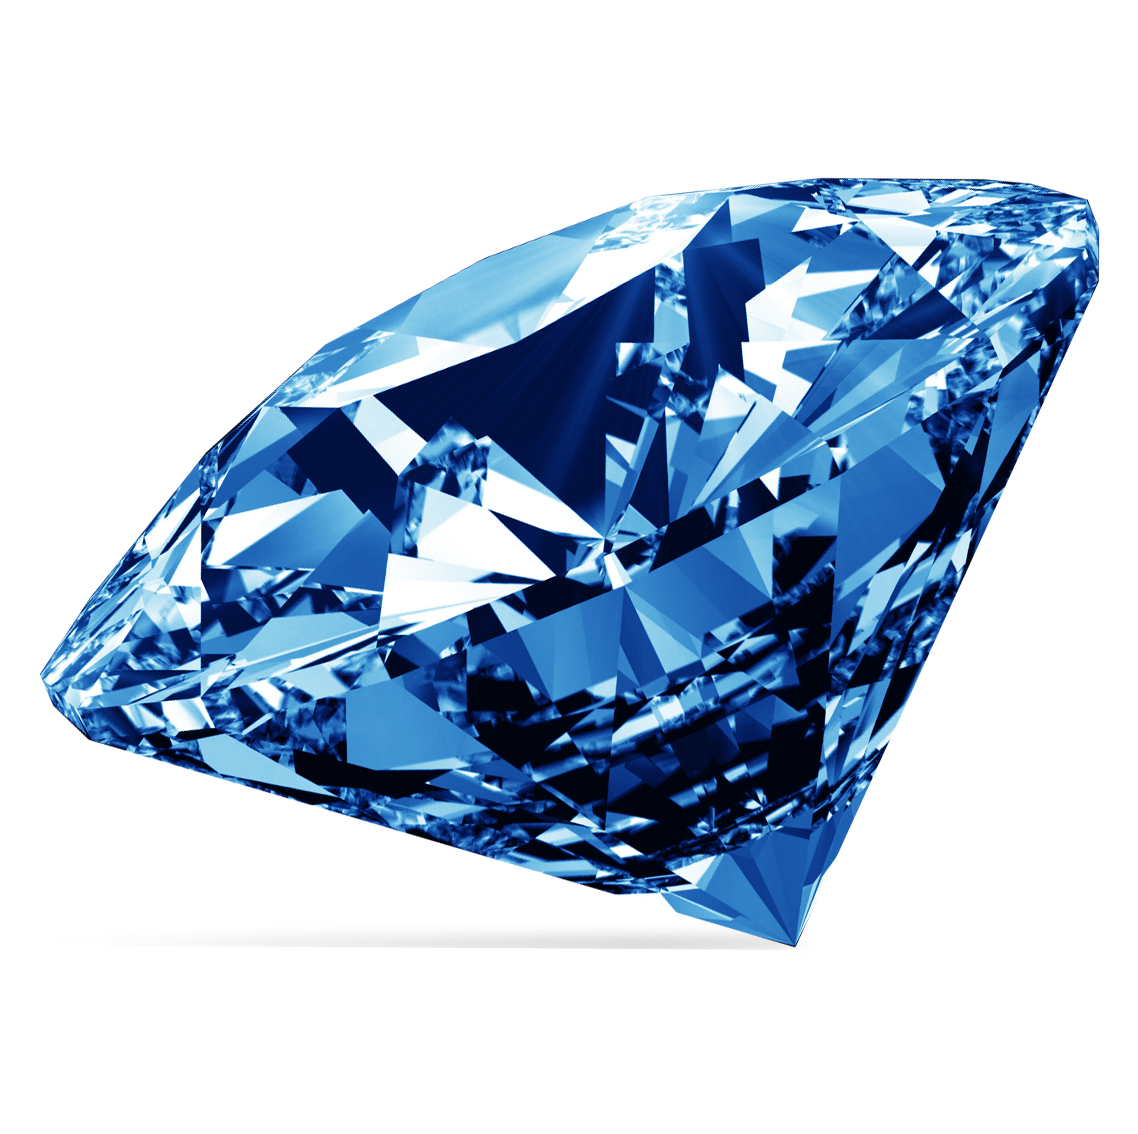 Diamond png image. Images free download blue